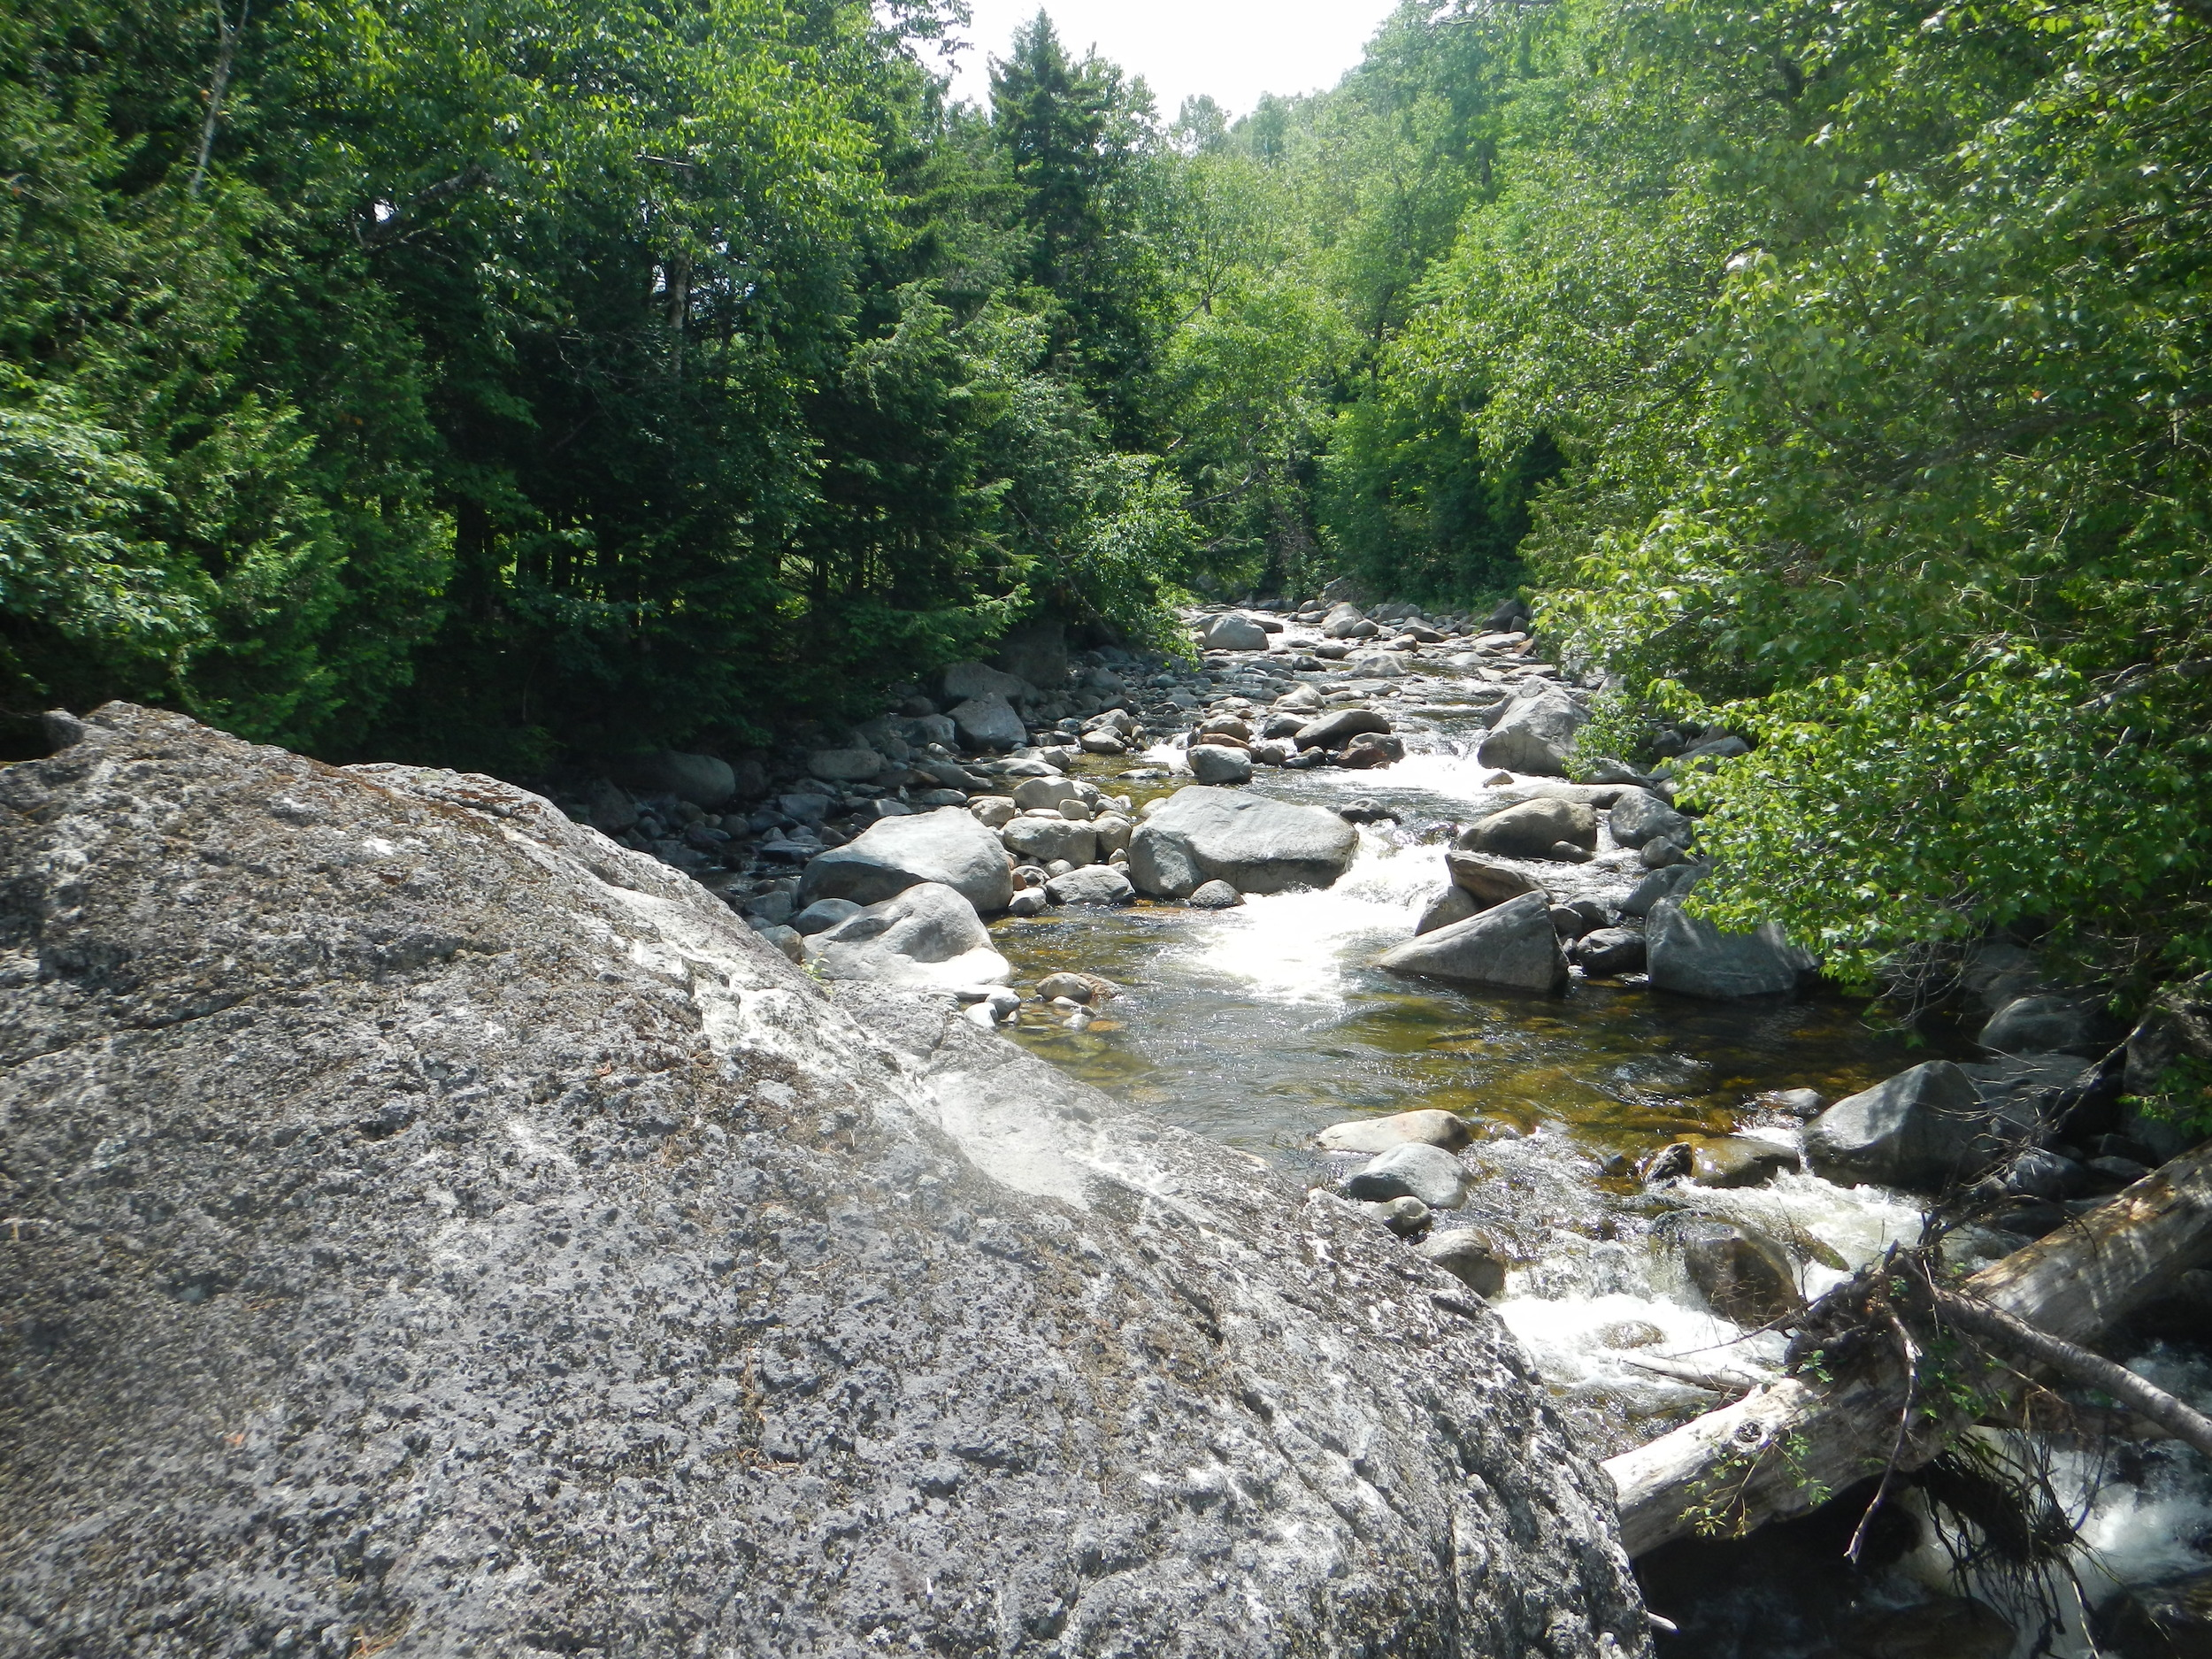 Looking downstream from a wooden bridge on Sugarloaf Mountain, Carrabassett Valley, Maine (Photo: Mimi Stadler 2014)